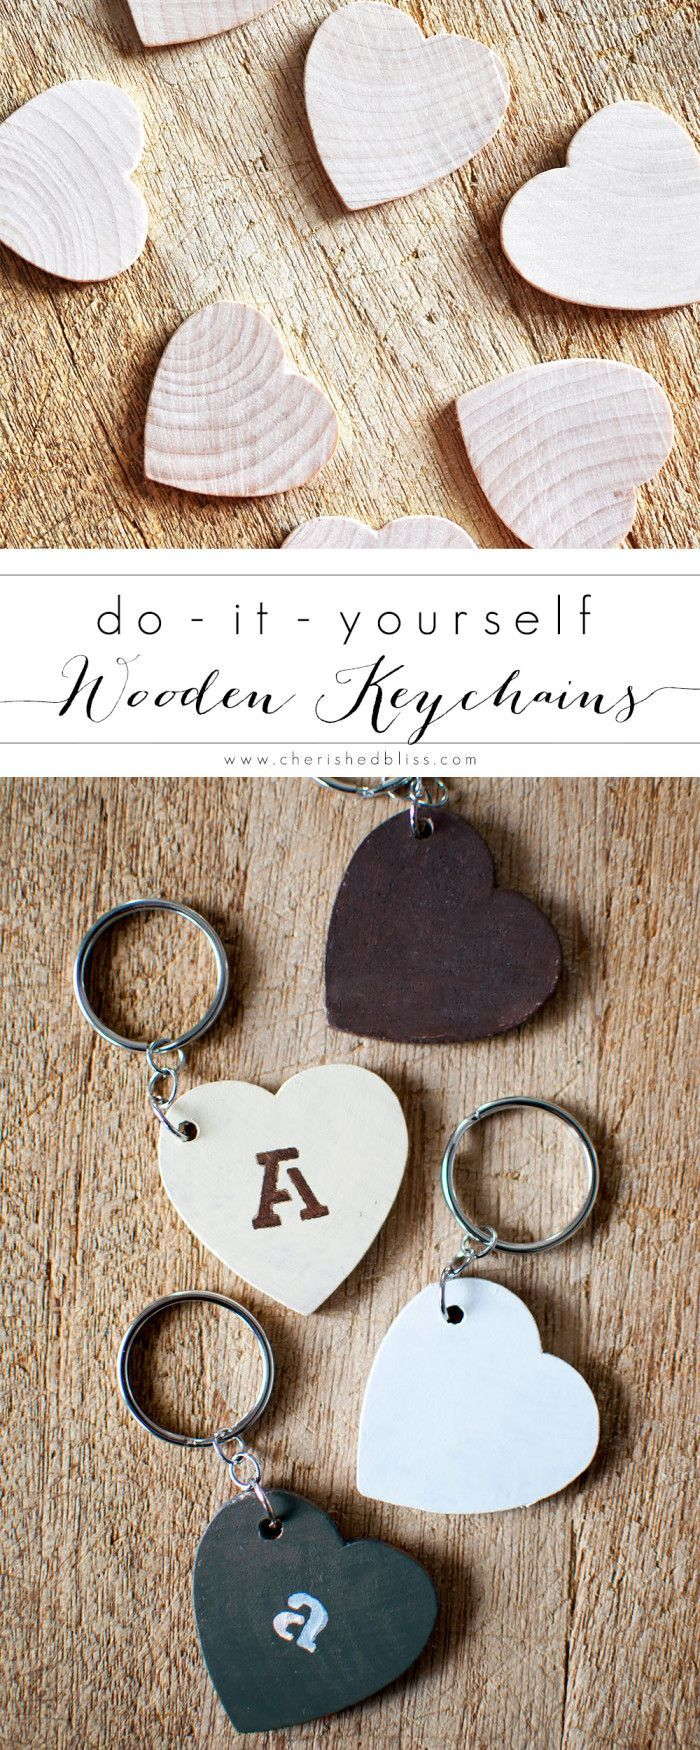 Diy keychains made from wooden hearts keychains easy handmade diy keychains made from wooden hearts solutioingenieria Images